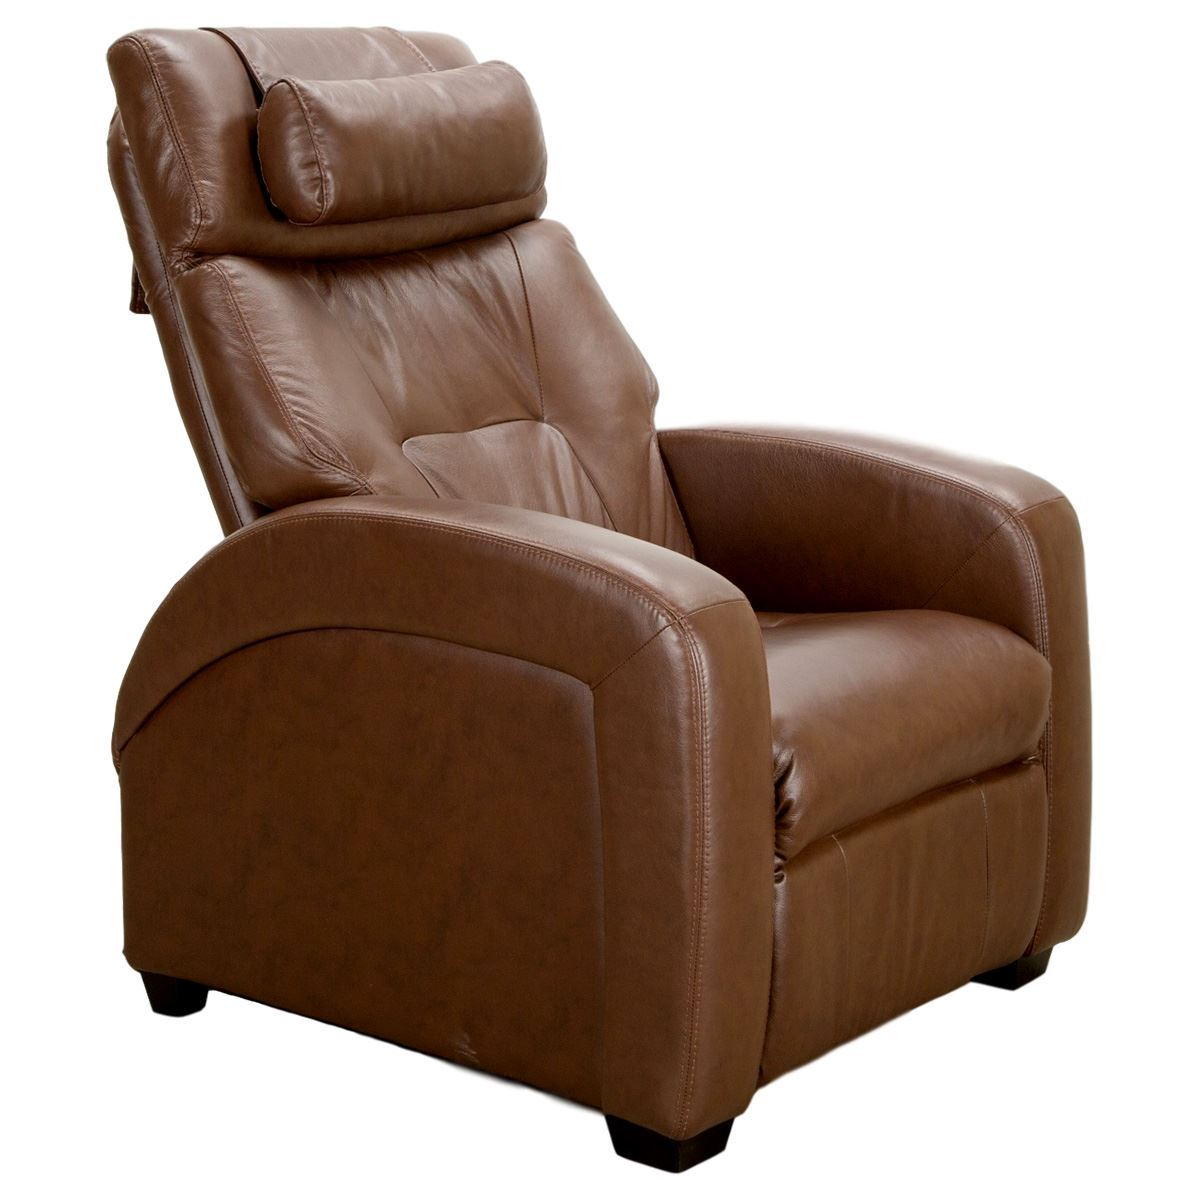 Zero Gravity Leather Recliner Zg5 By Palliser Furniture Living Room Furniture Babette 39 S